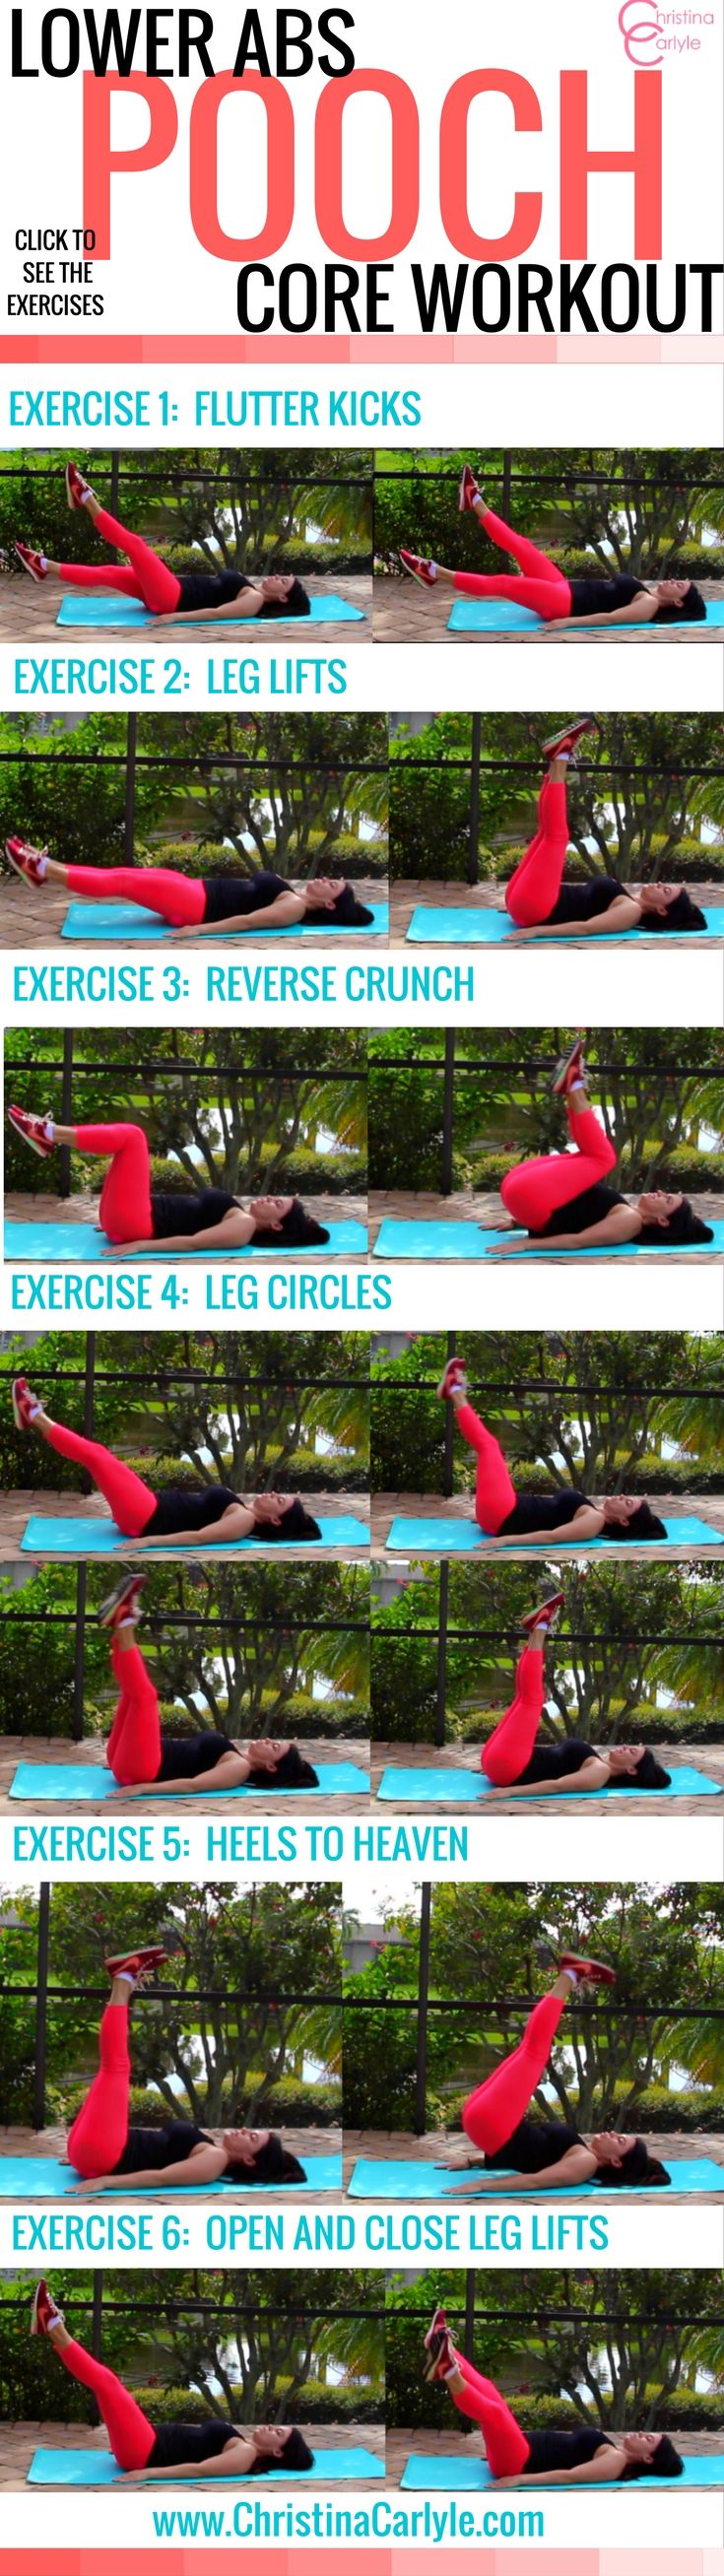 Does your belly pooch both you? Learn how to exercise your lower abs and get a…